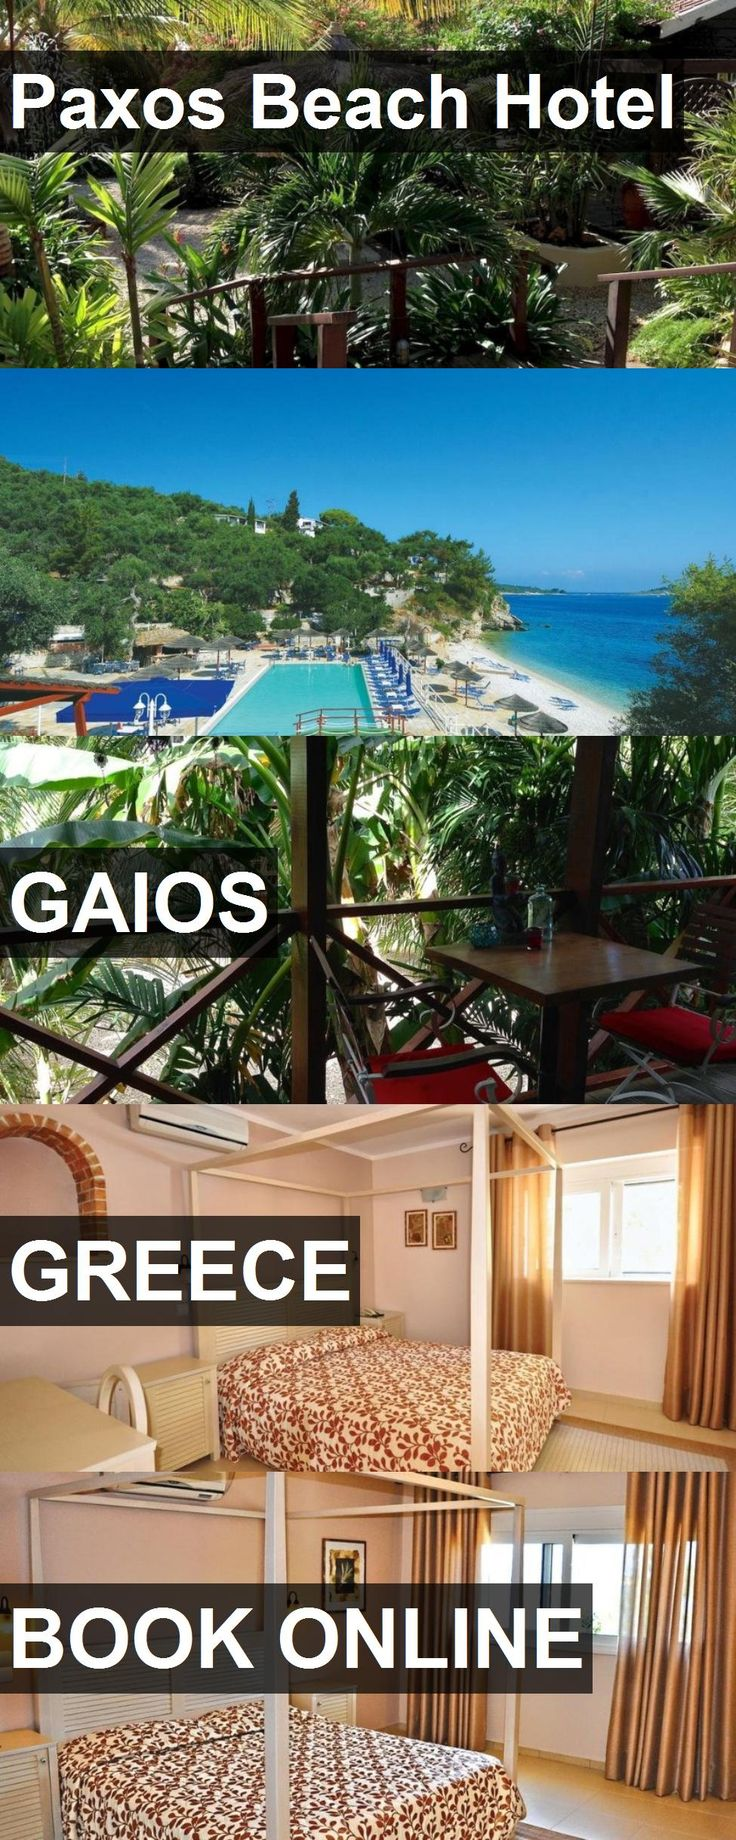 Hotel Paxos Beach Hotel in Gaios, Greece. For more information, photos, reviews and best prices please follow the link. #Greece #Gaios #PaxosBeachHotel #hotel #travel #vacation